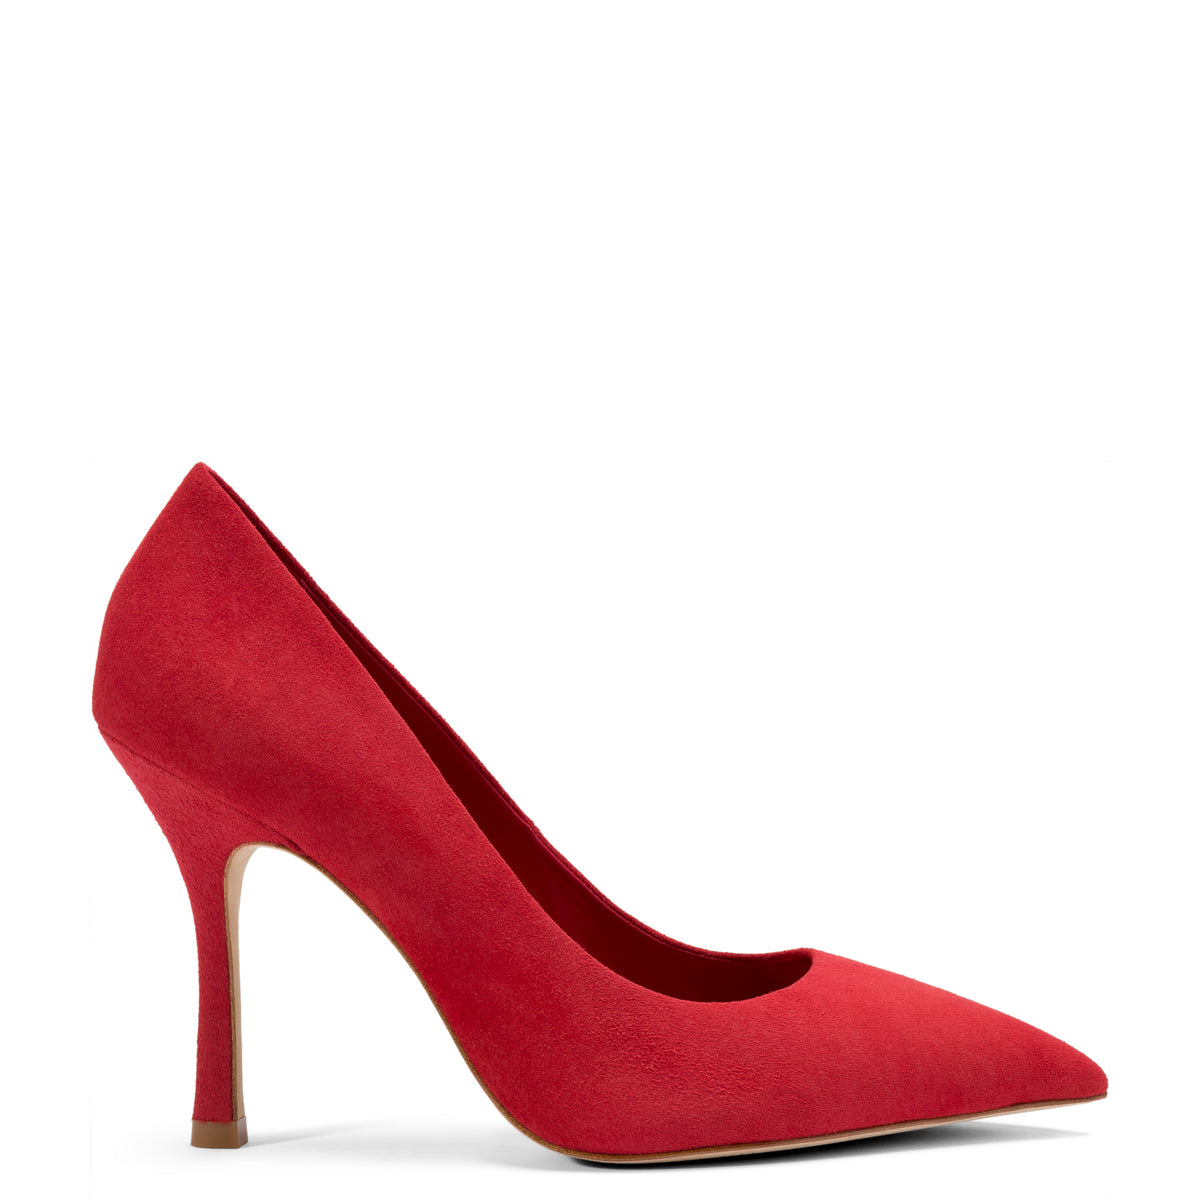 Candy Pump In Red Suede